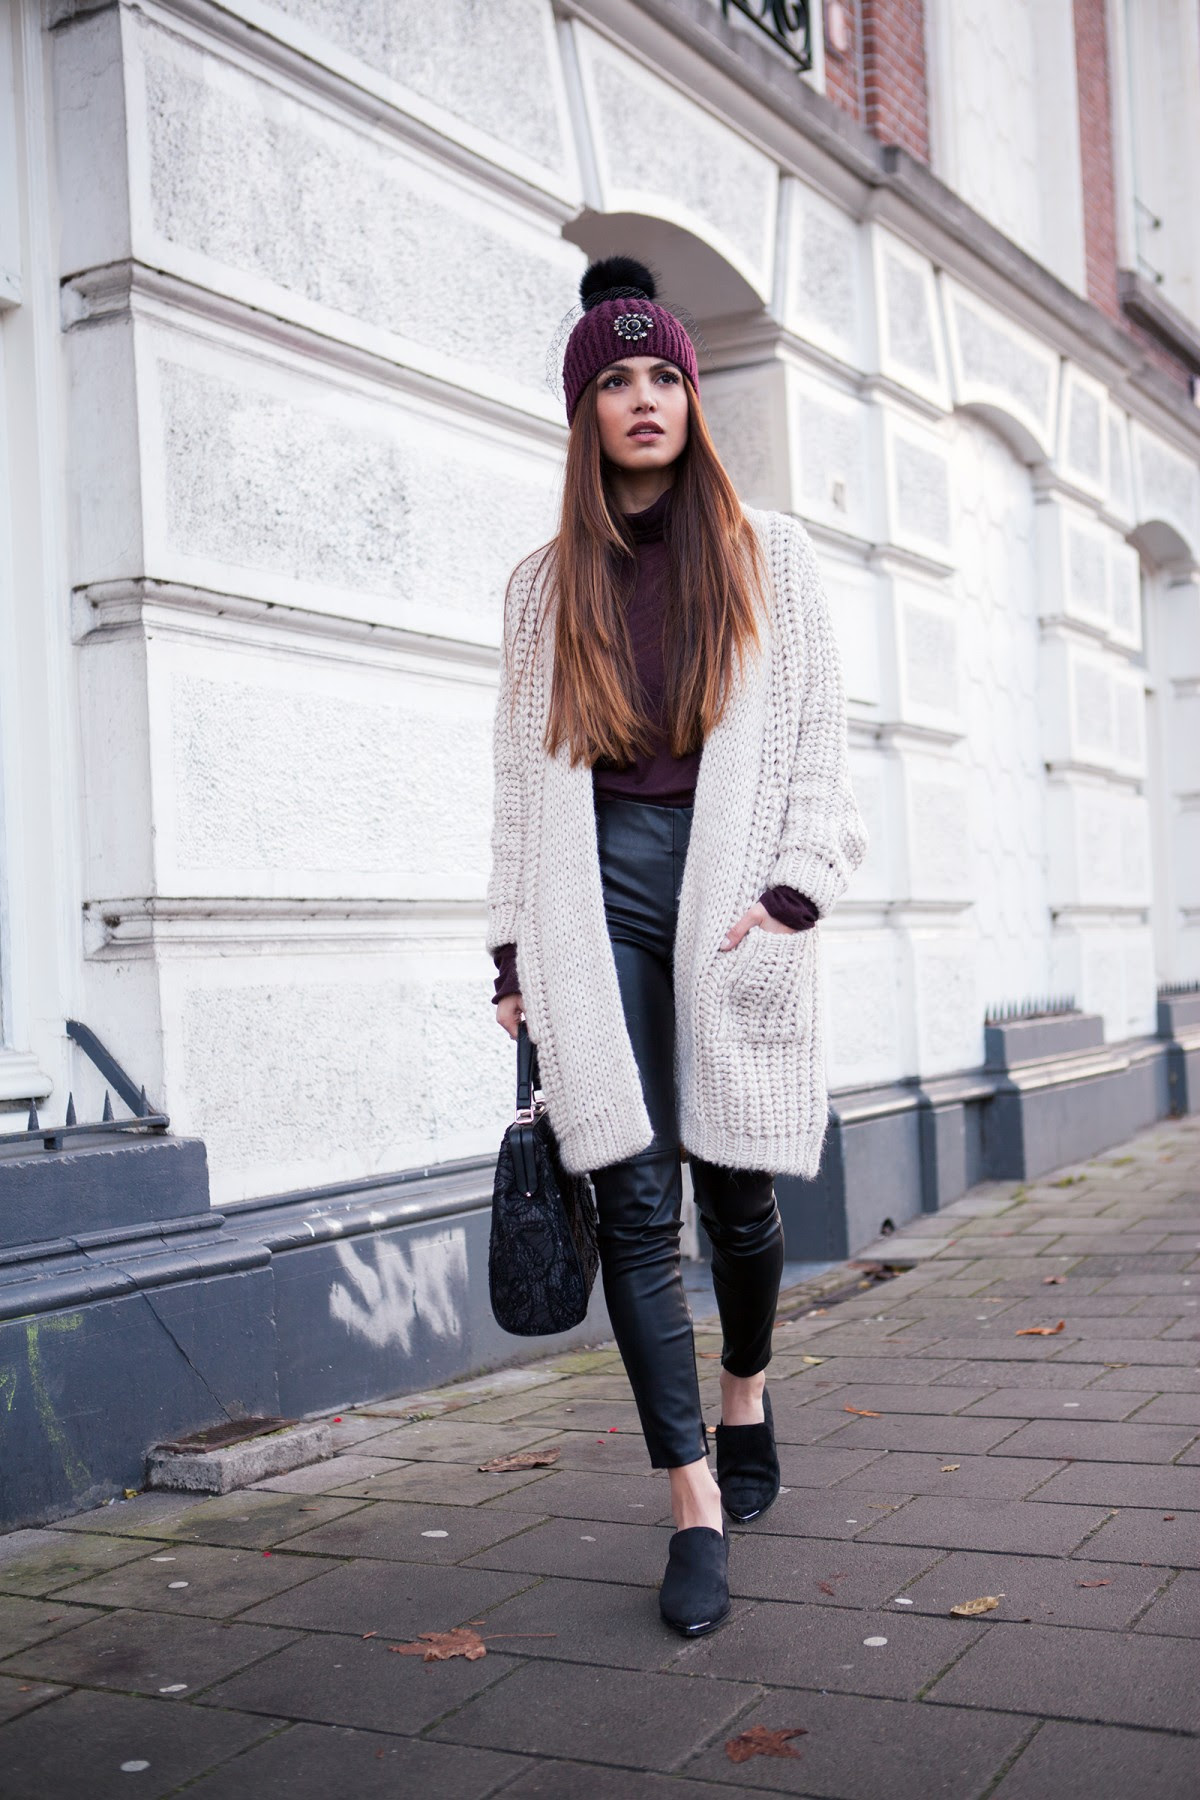 long cardigan outfits an autumn fashion trend  just